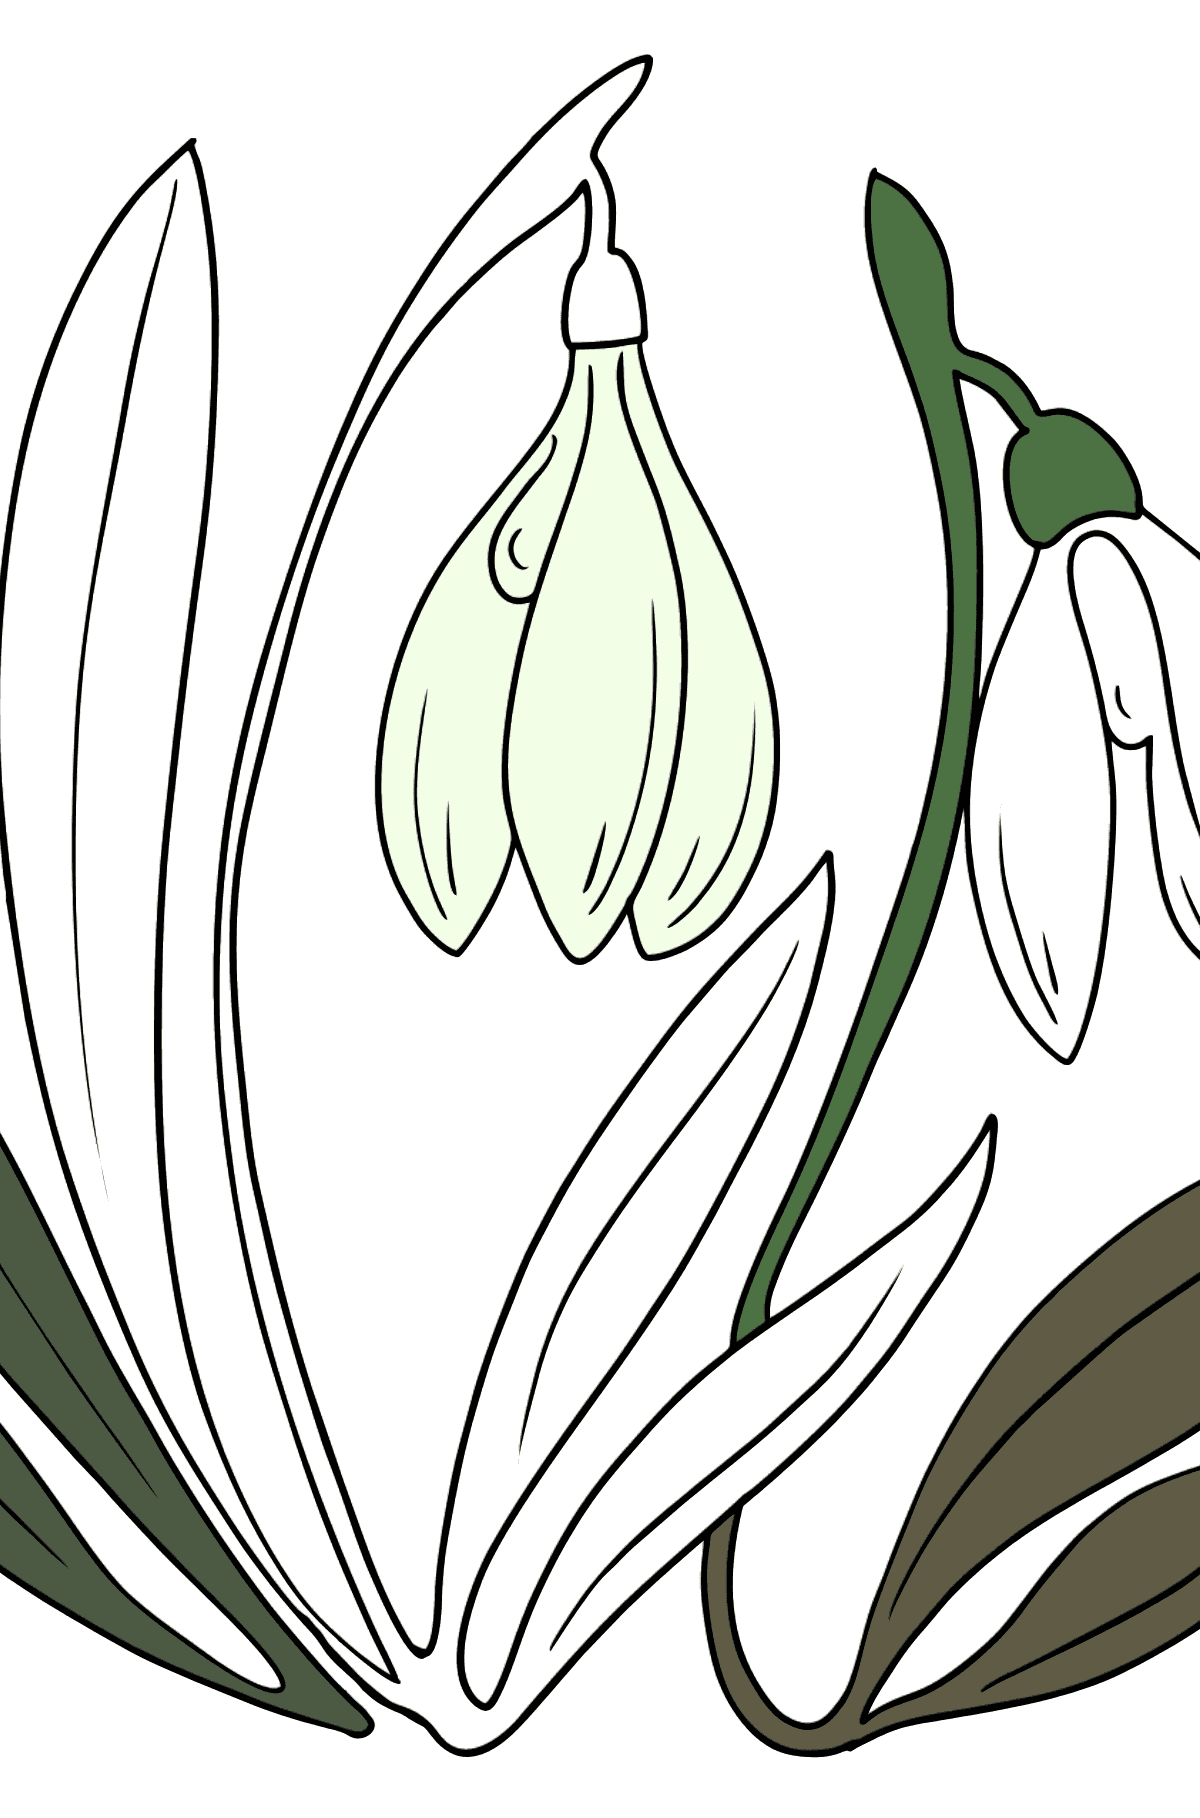 Coloring Page - spring flowers - Coloring Pages for Kids